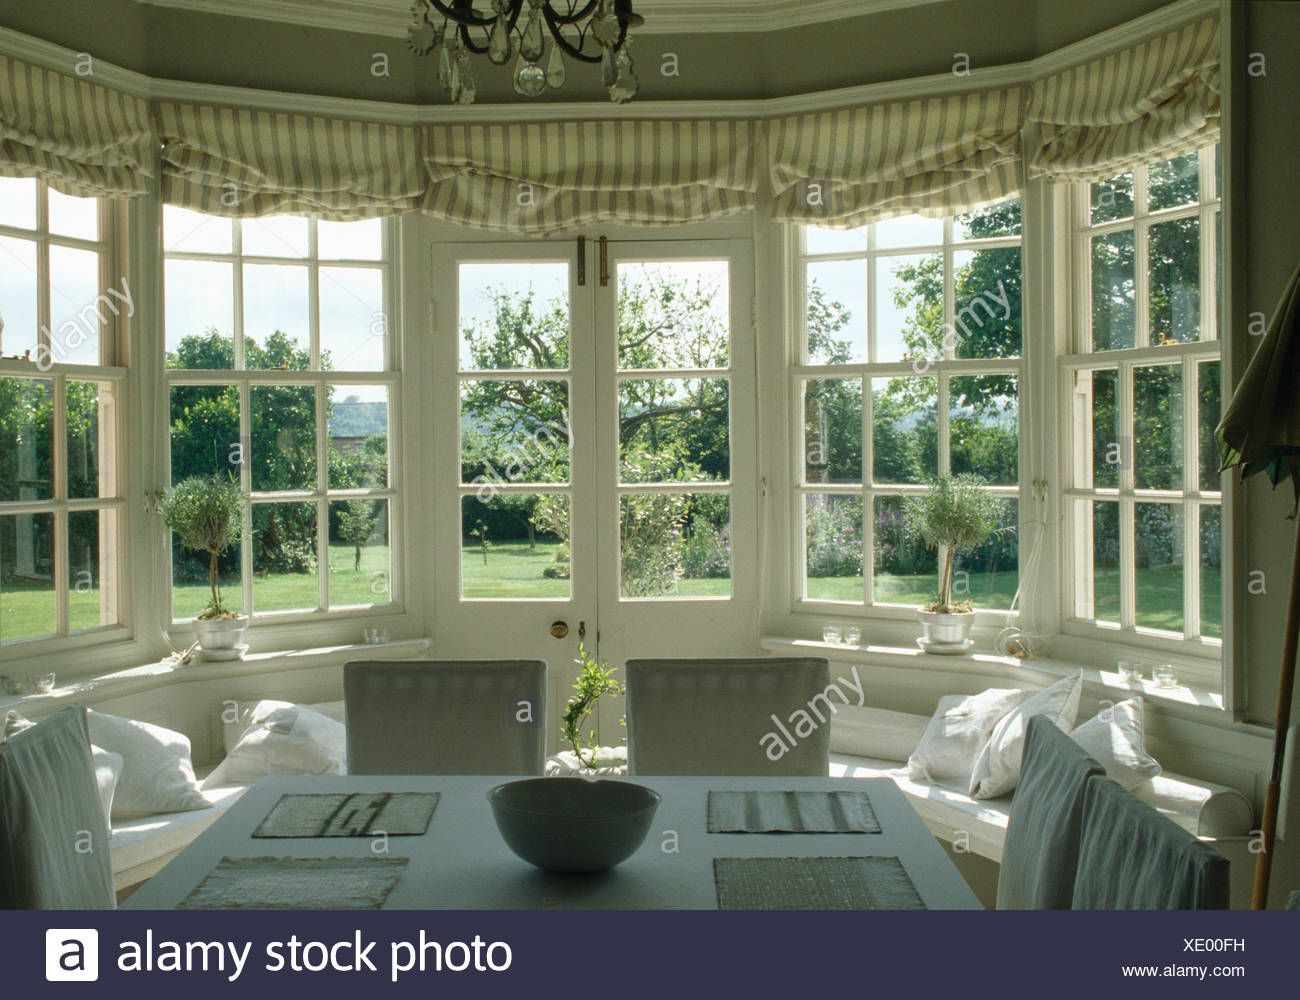 Striped Blinds On French Windows In Country Dining Room With View Of The  Garden